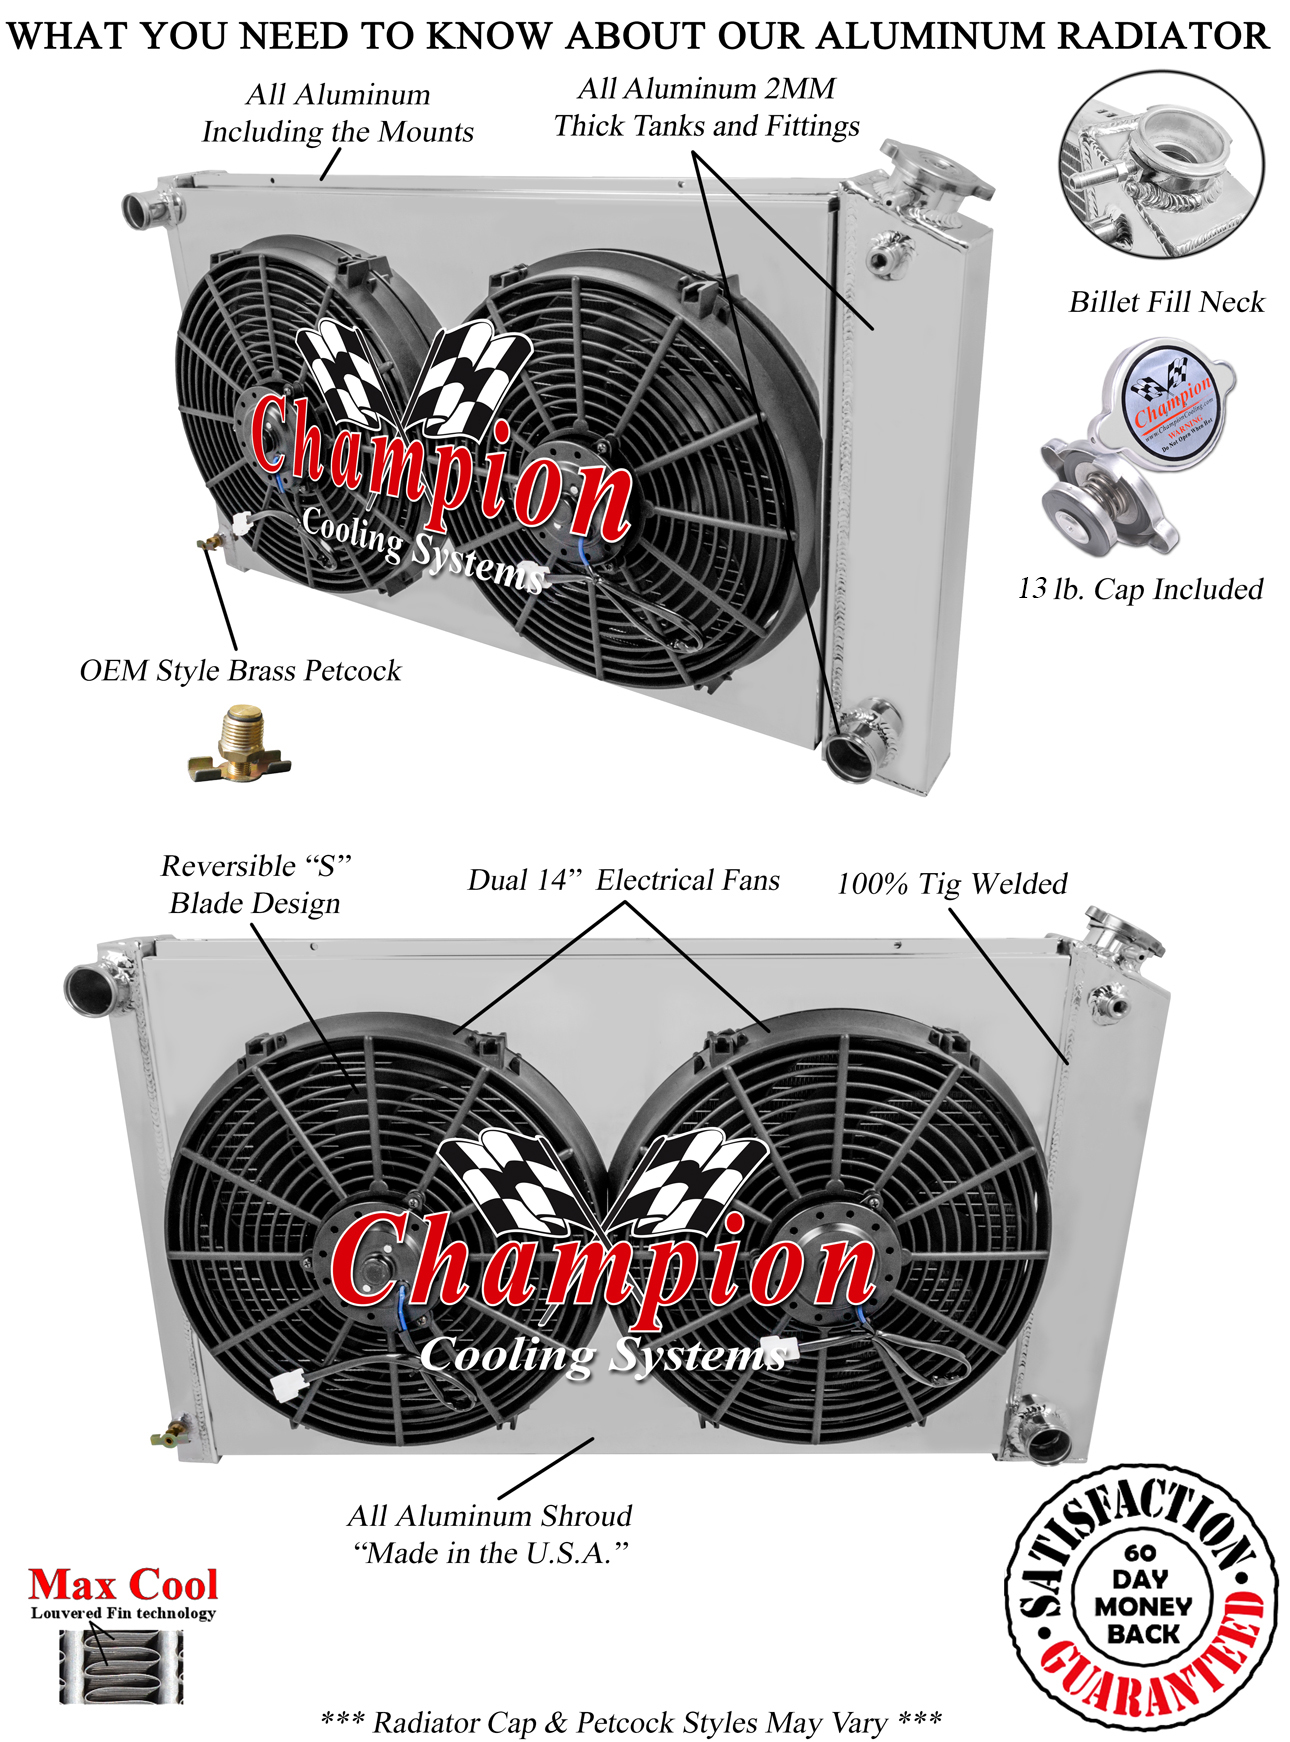 https://www.championcooling.com/photos/Photos%20White/With%20Fans/W-Shroud/161-m/161-m_2fs_d_w.jpg